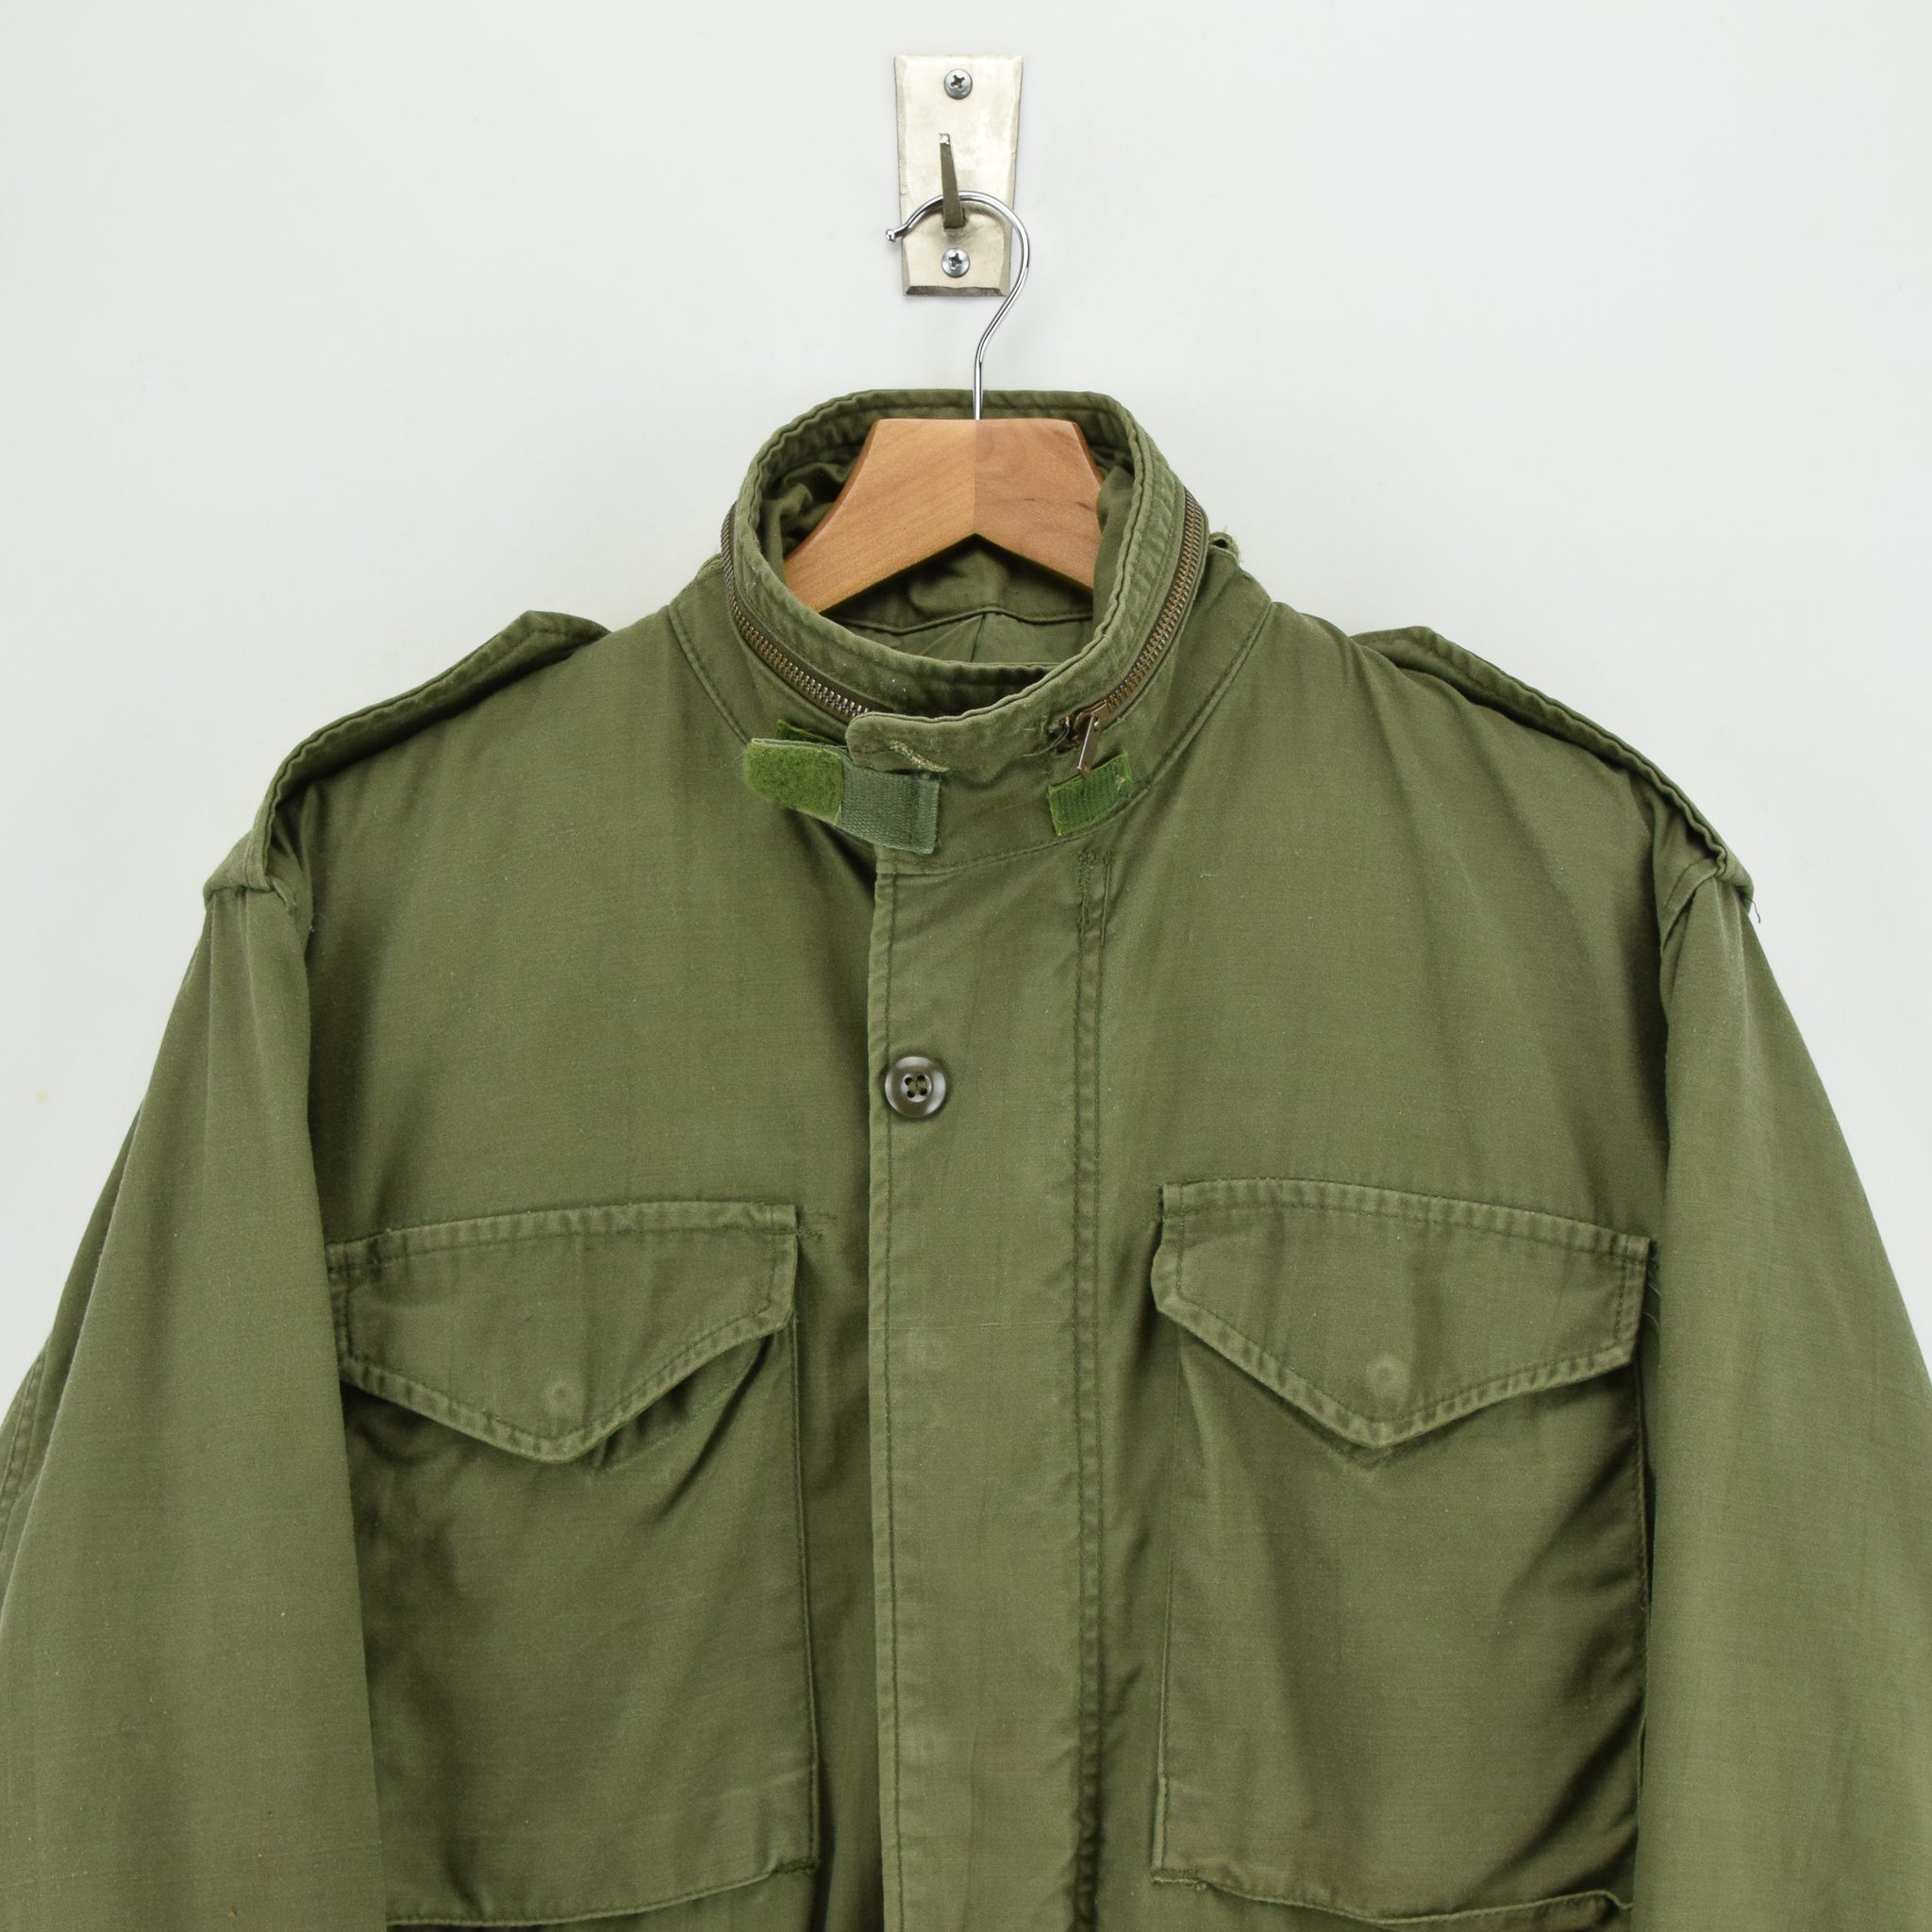 Vintage 80s Alpha Industries M-65 Green Coat Cold Weather Man's Field Jacket S chest